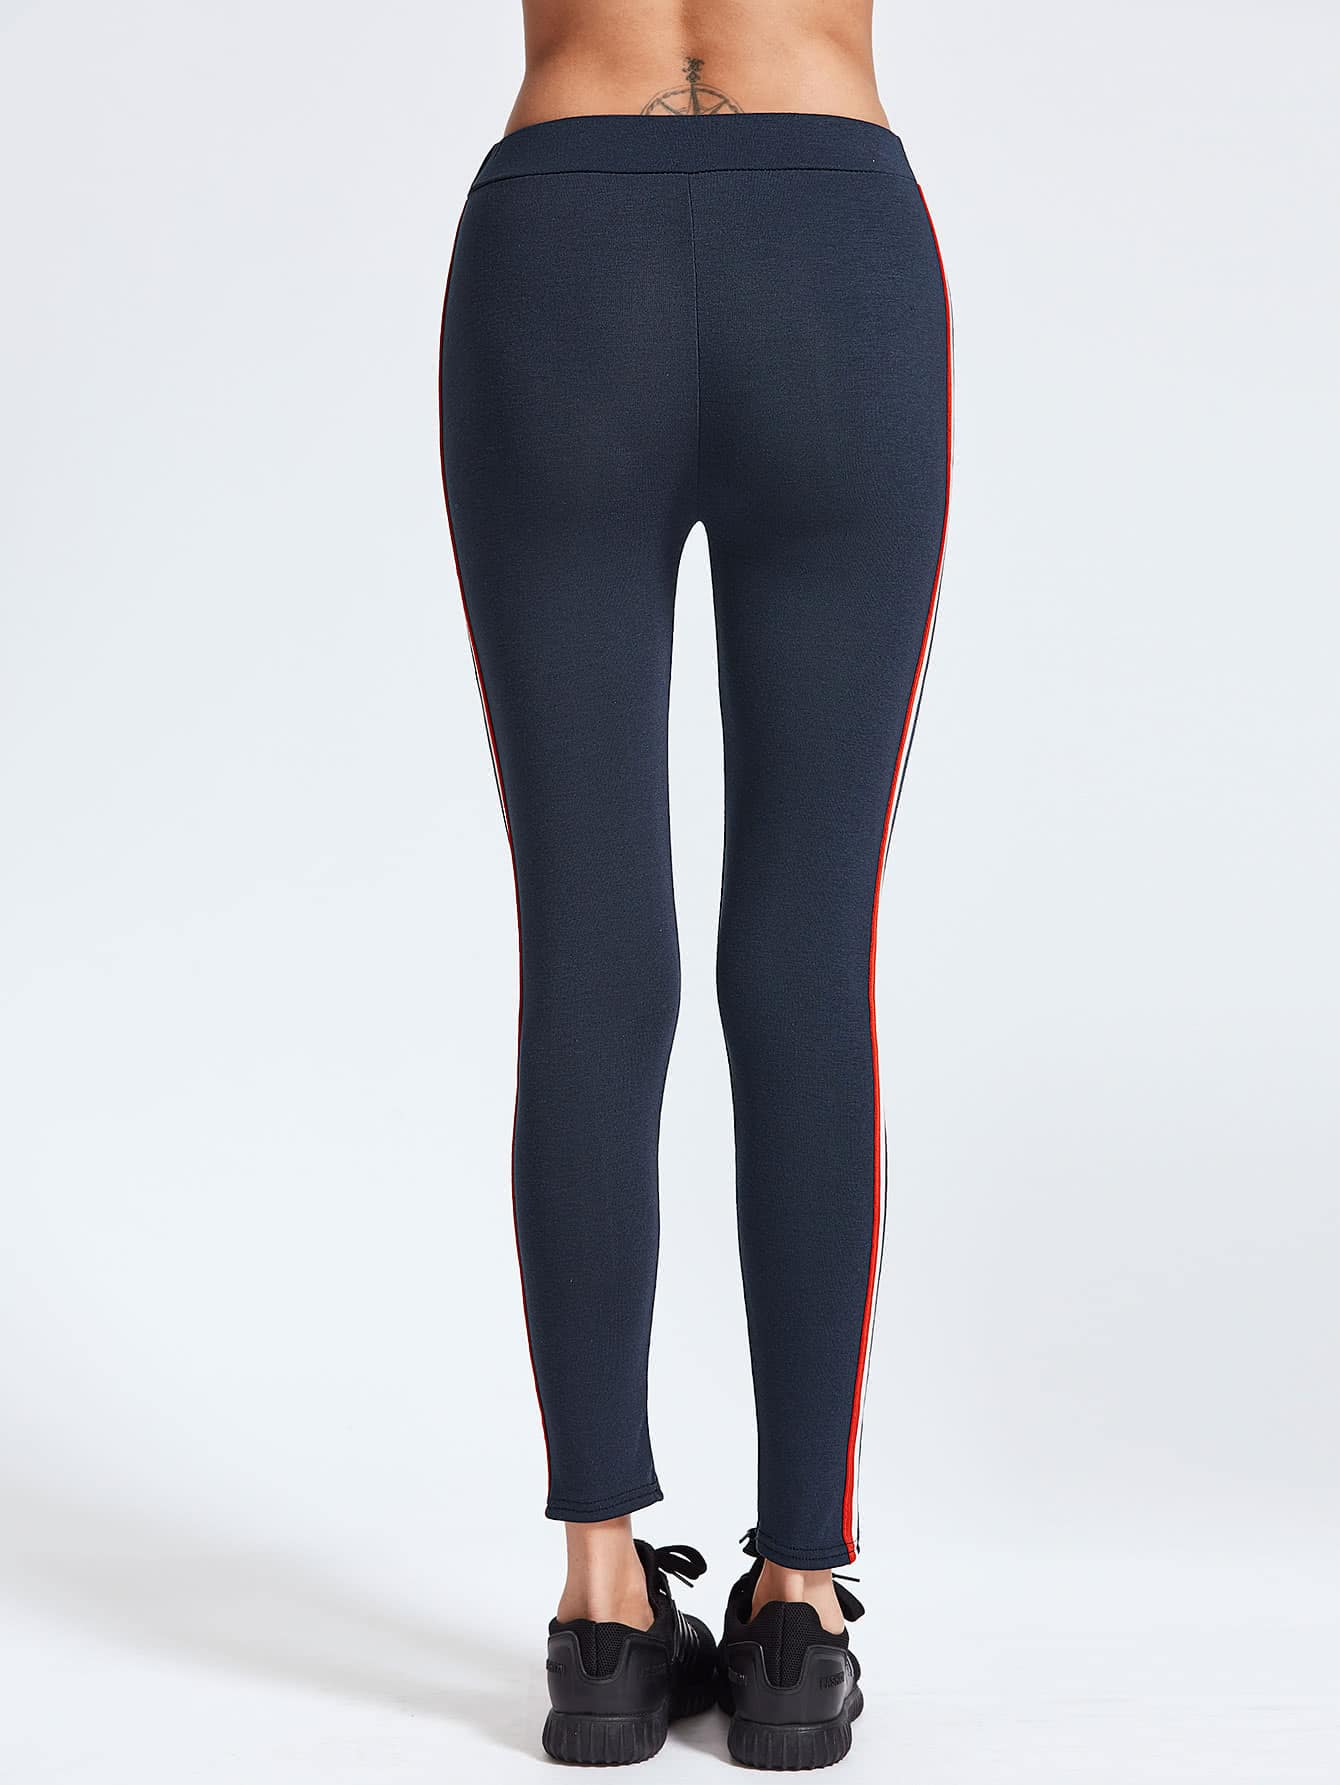 leggings170301101_2